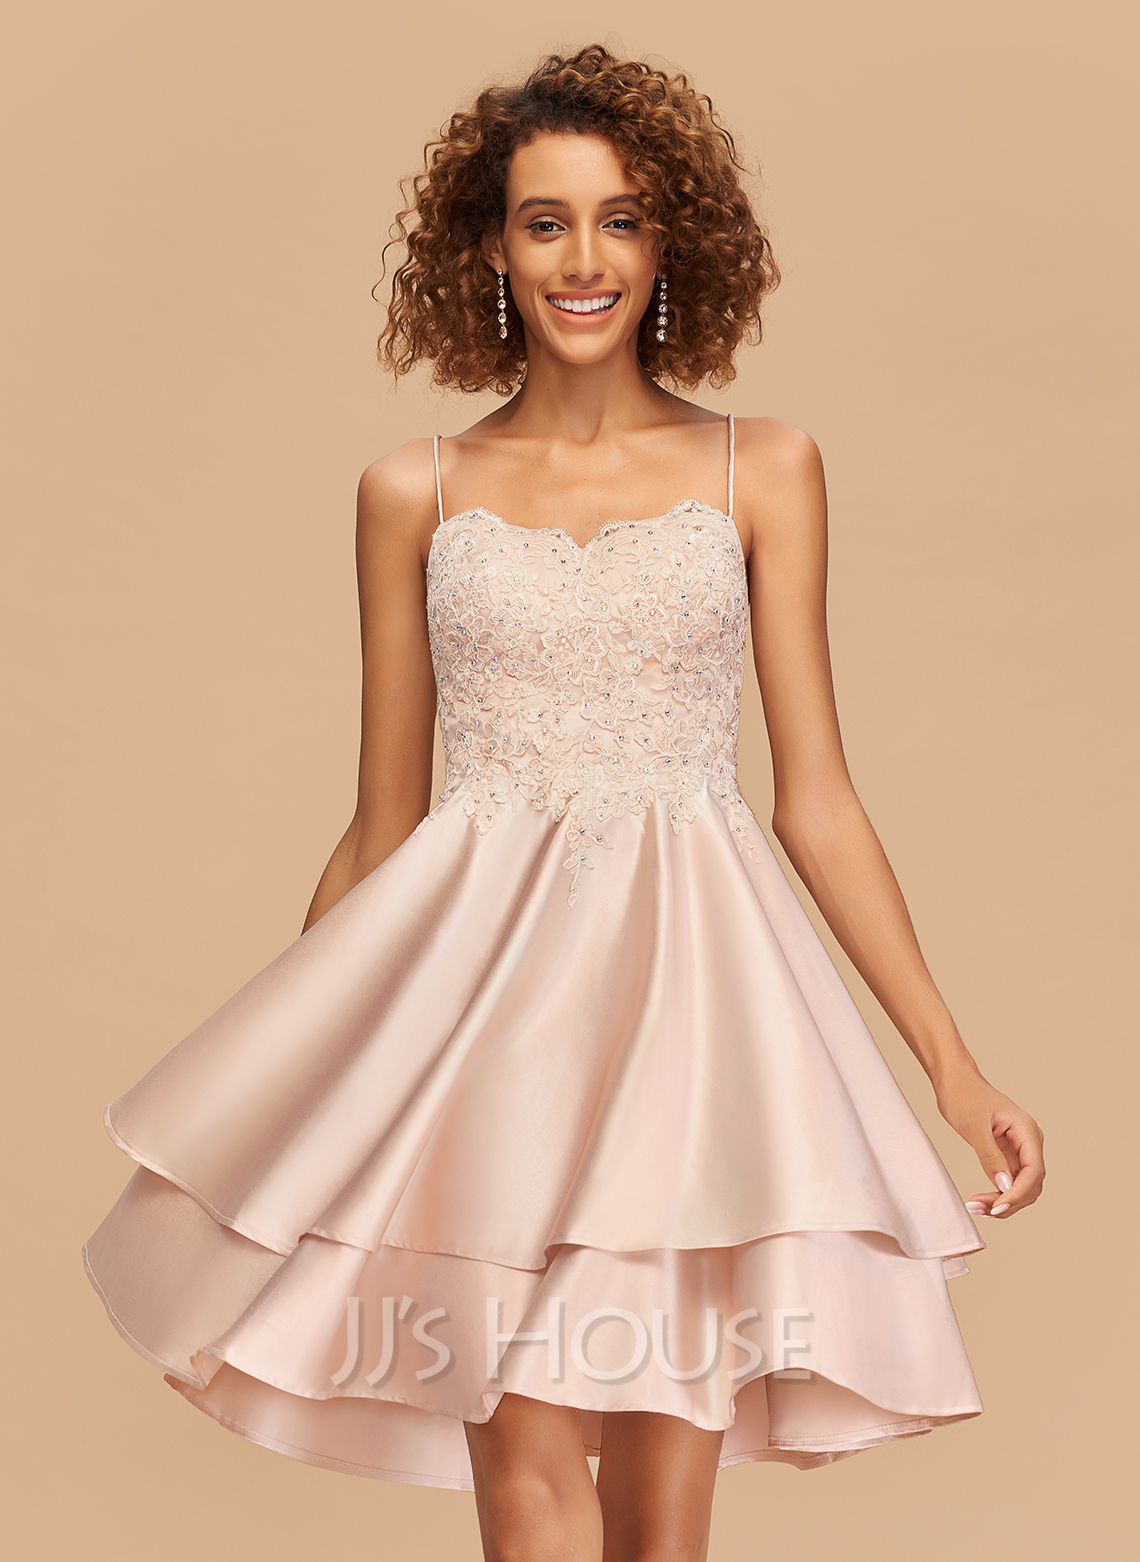 A-Line Square Neckline Knee-Length Satin Homecoming Dress With Lace Beading